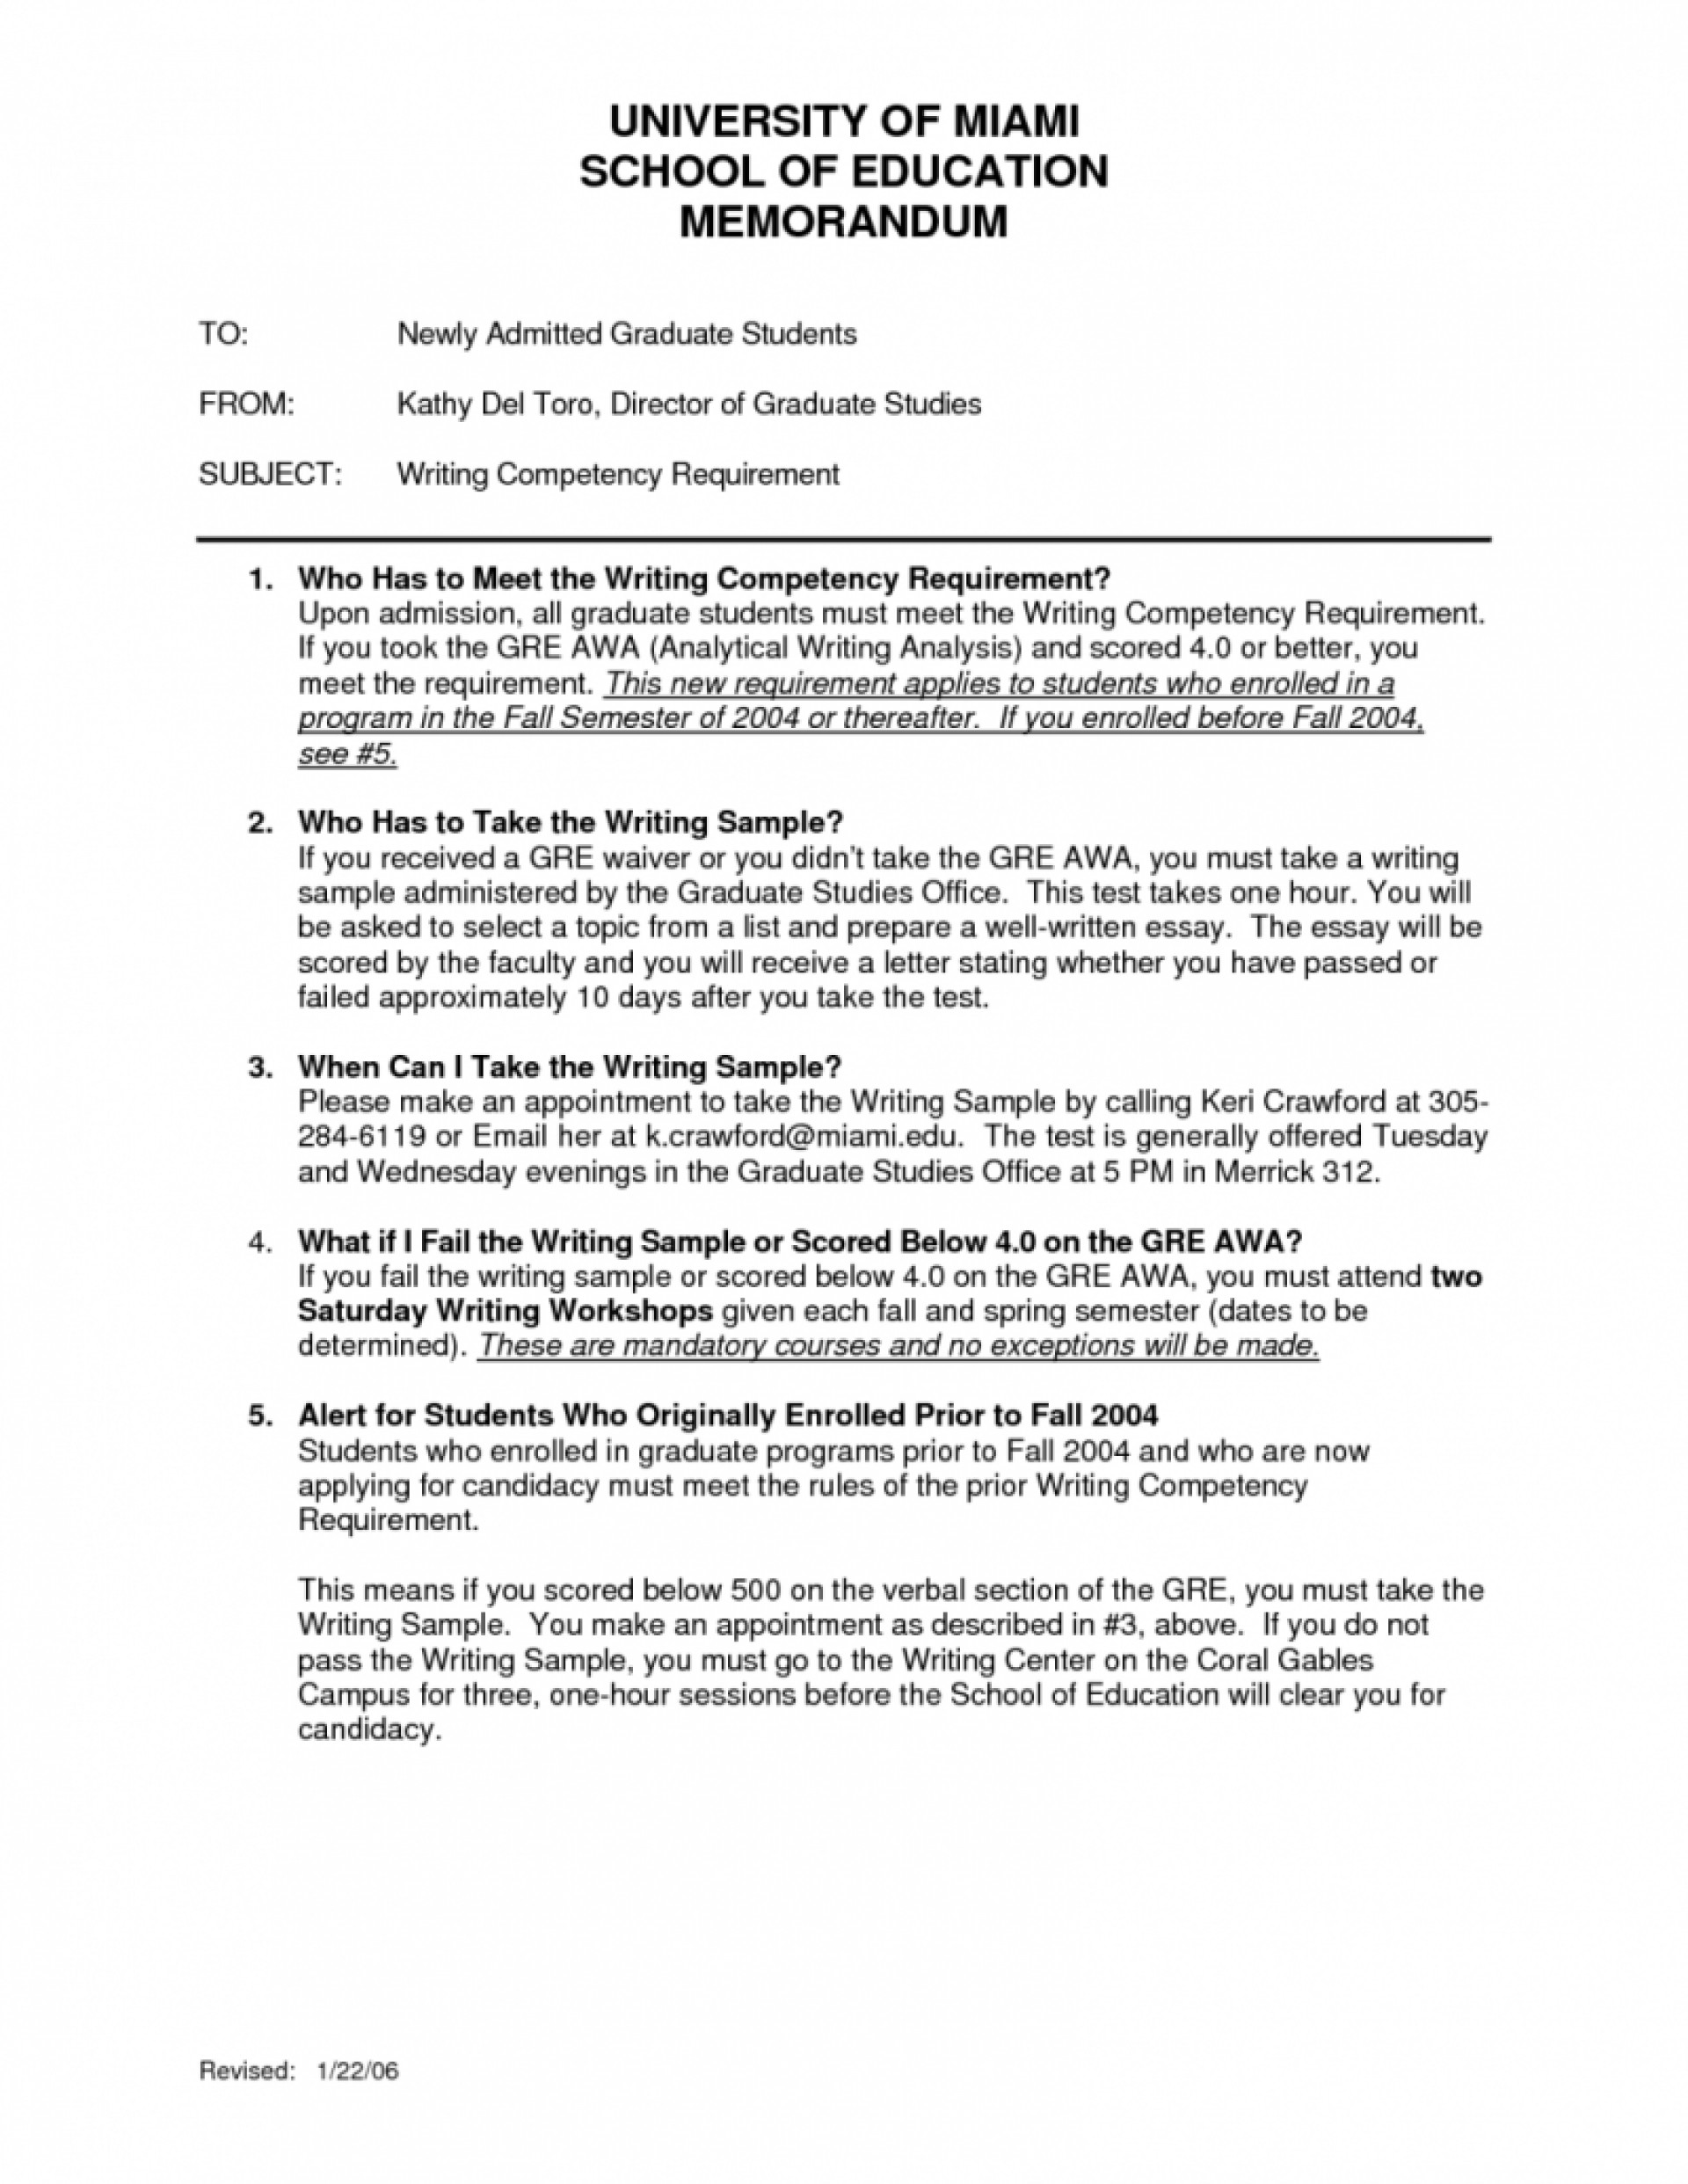 010 Gre Essays Issue Meet The Categories Of Essay Topics Writing Books Format Examples Pdf Strategies Tips Preparation Practice 1048x1356resize8002c1035 Example Unique Sample Argument Prompts 1920